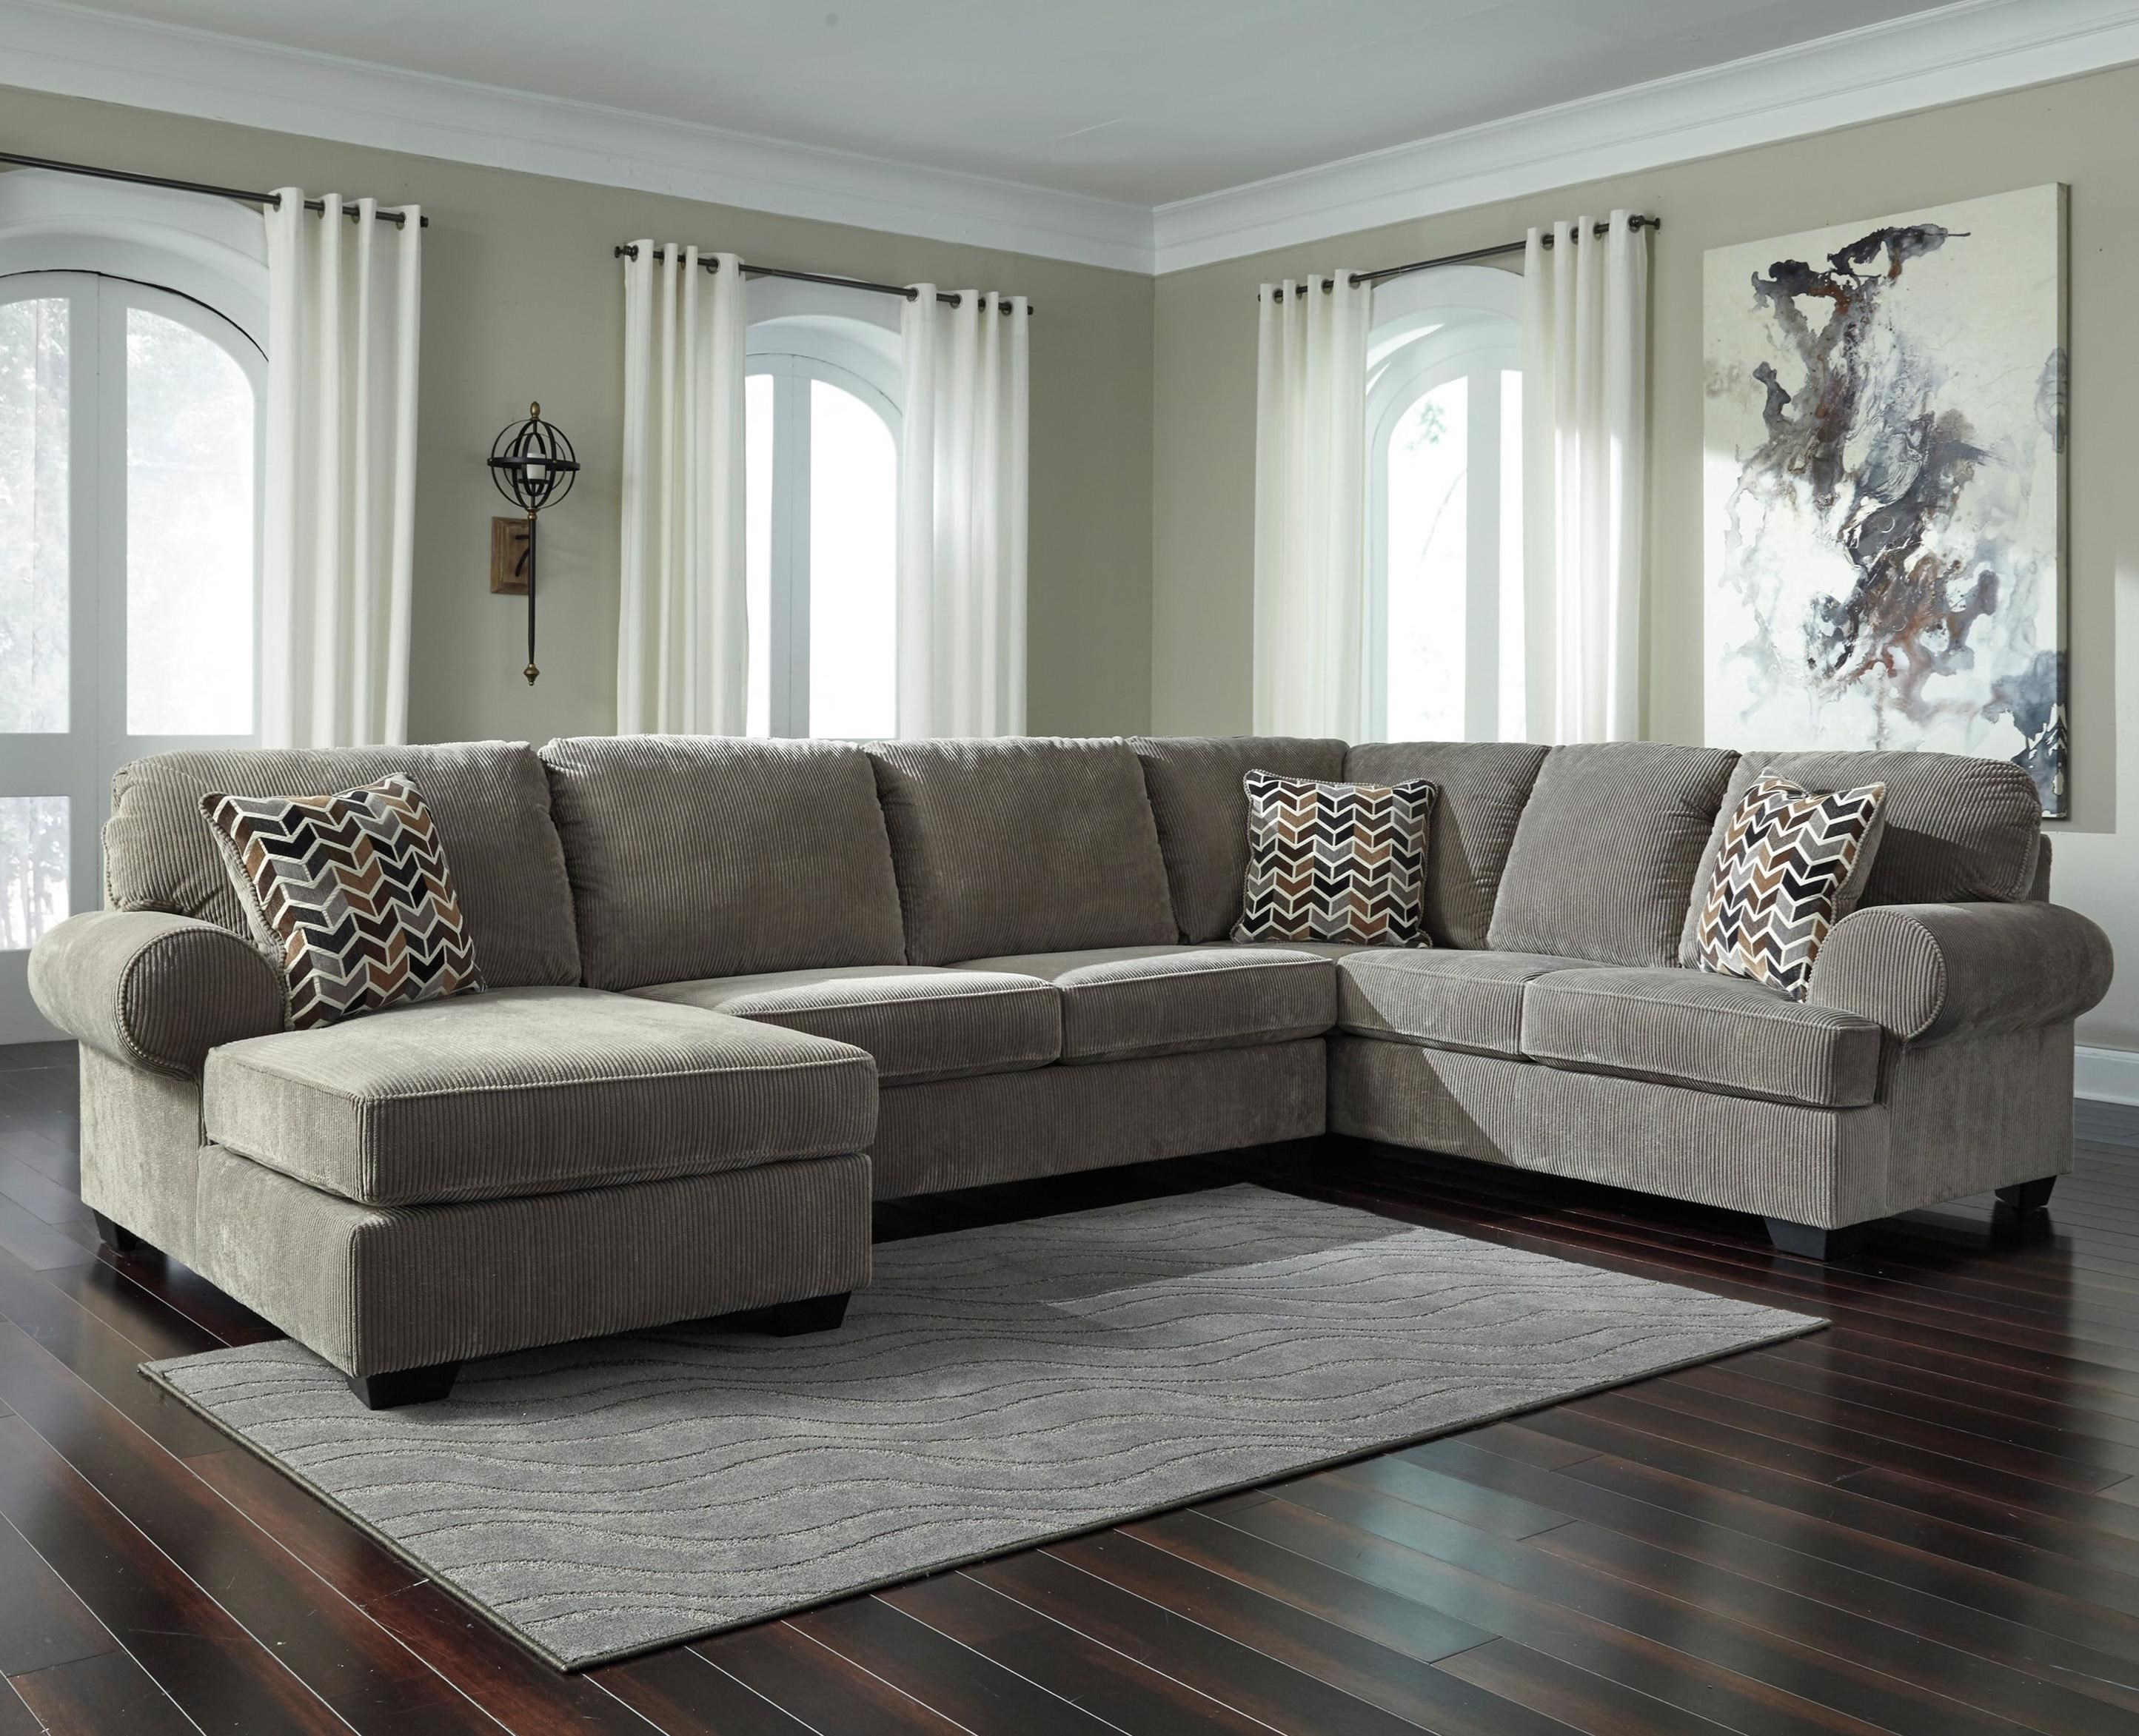 Jinllingsly 3-Piece Sectional with Chaise by Ashley (Signature Design) at Johnny Janosik